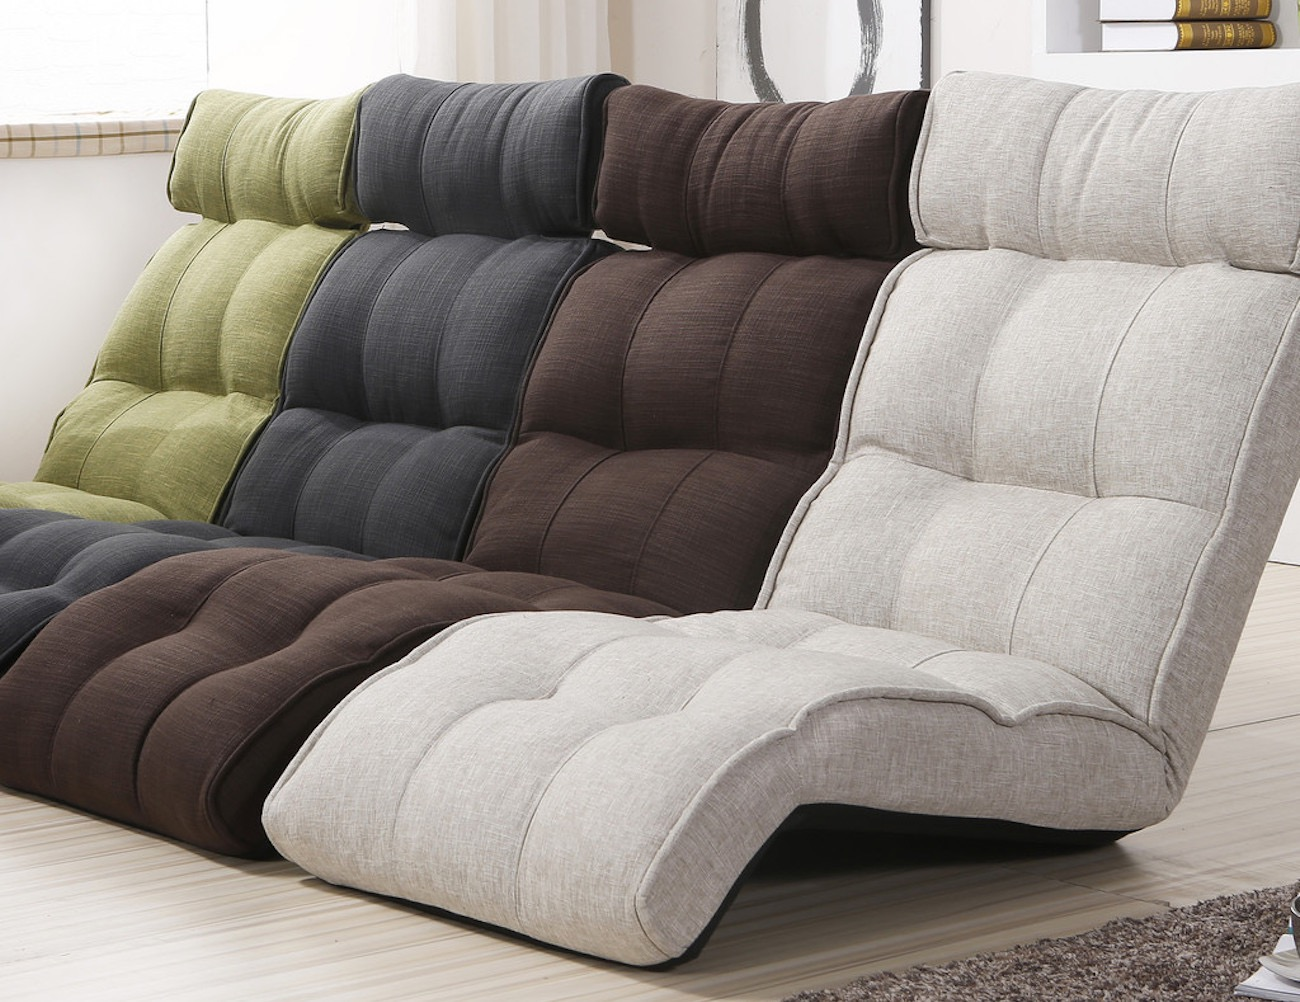 Cozy Chairs Deluxe Sofa Chair By Cozy Kino Gadget Flow